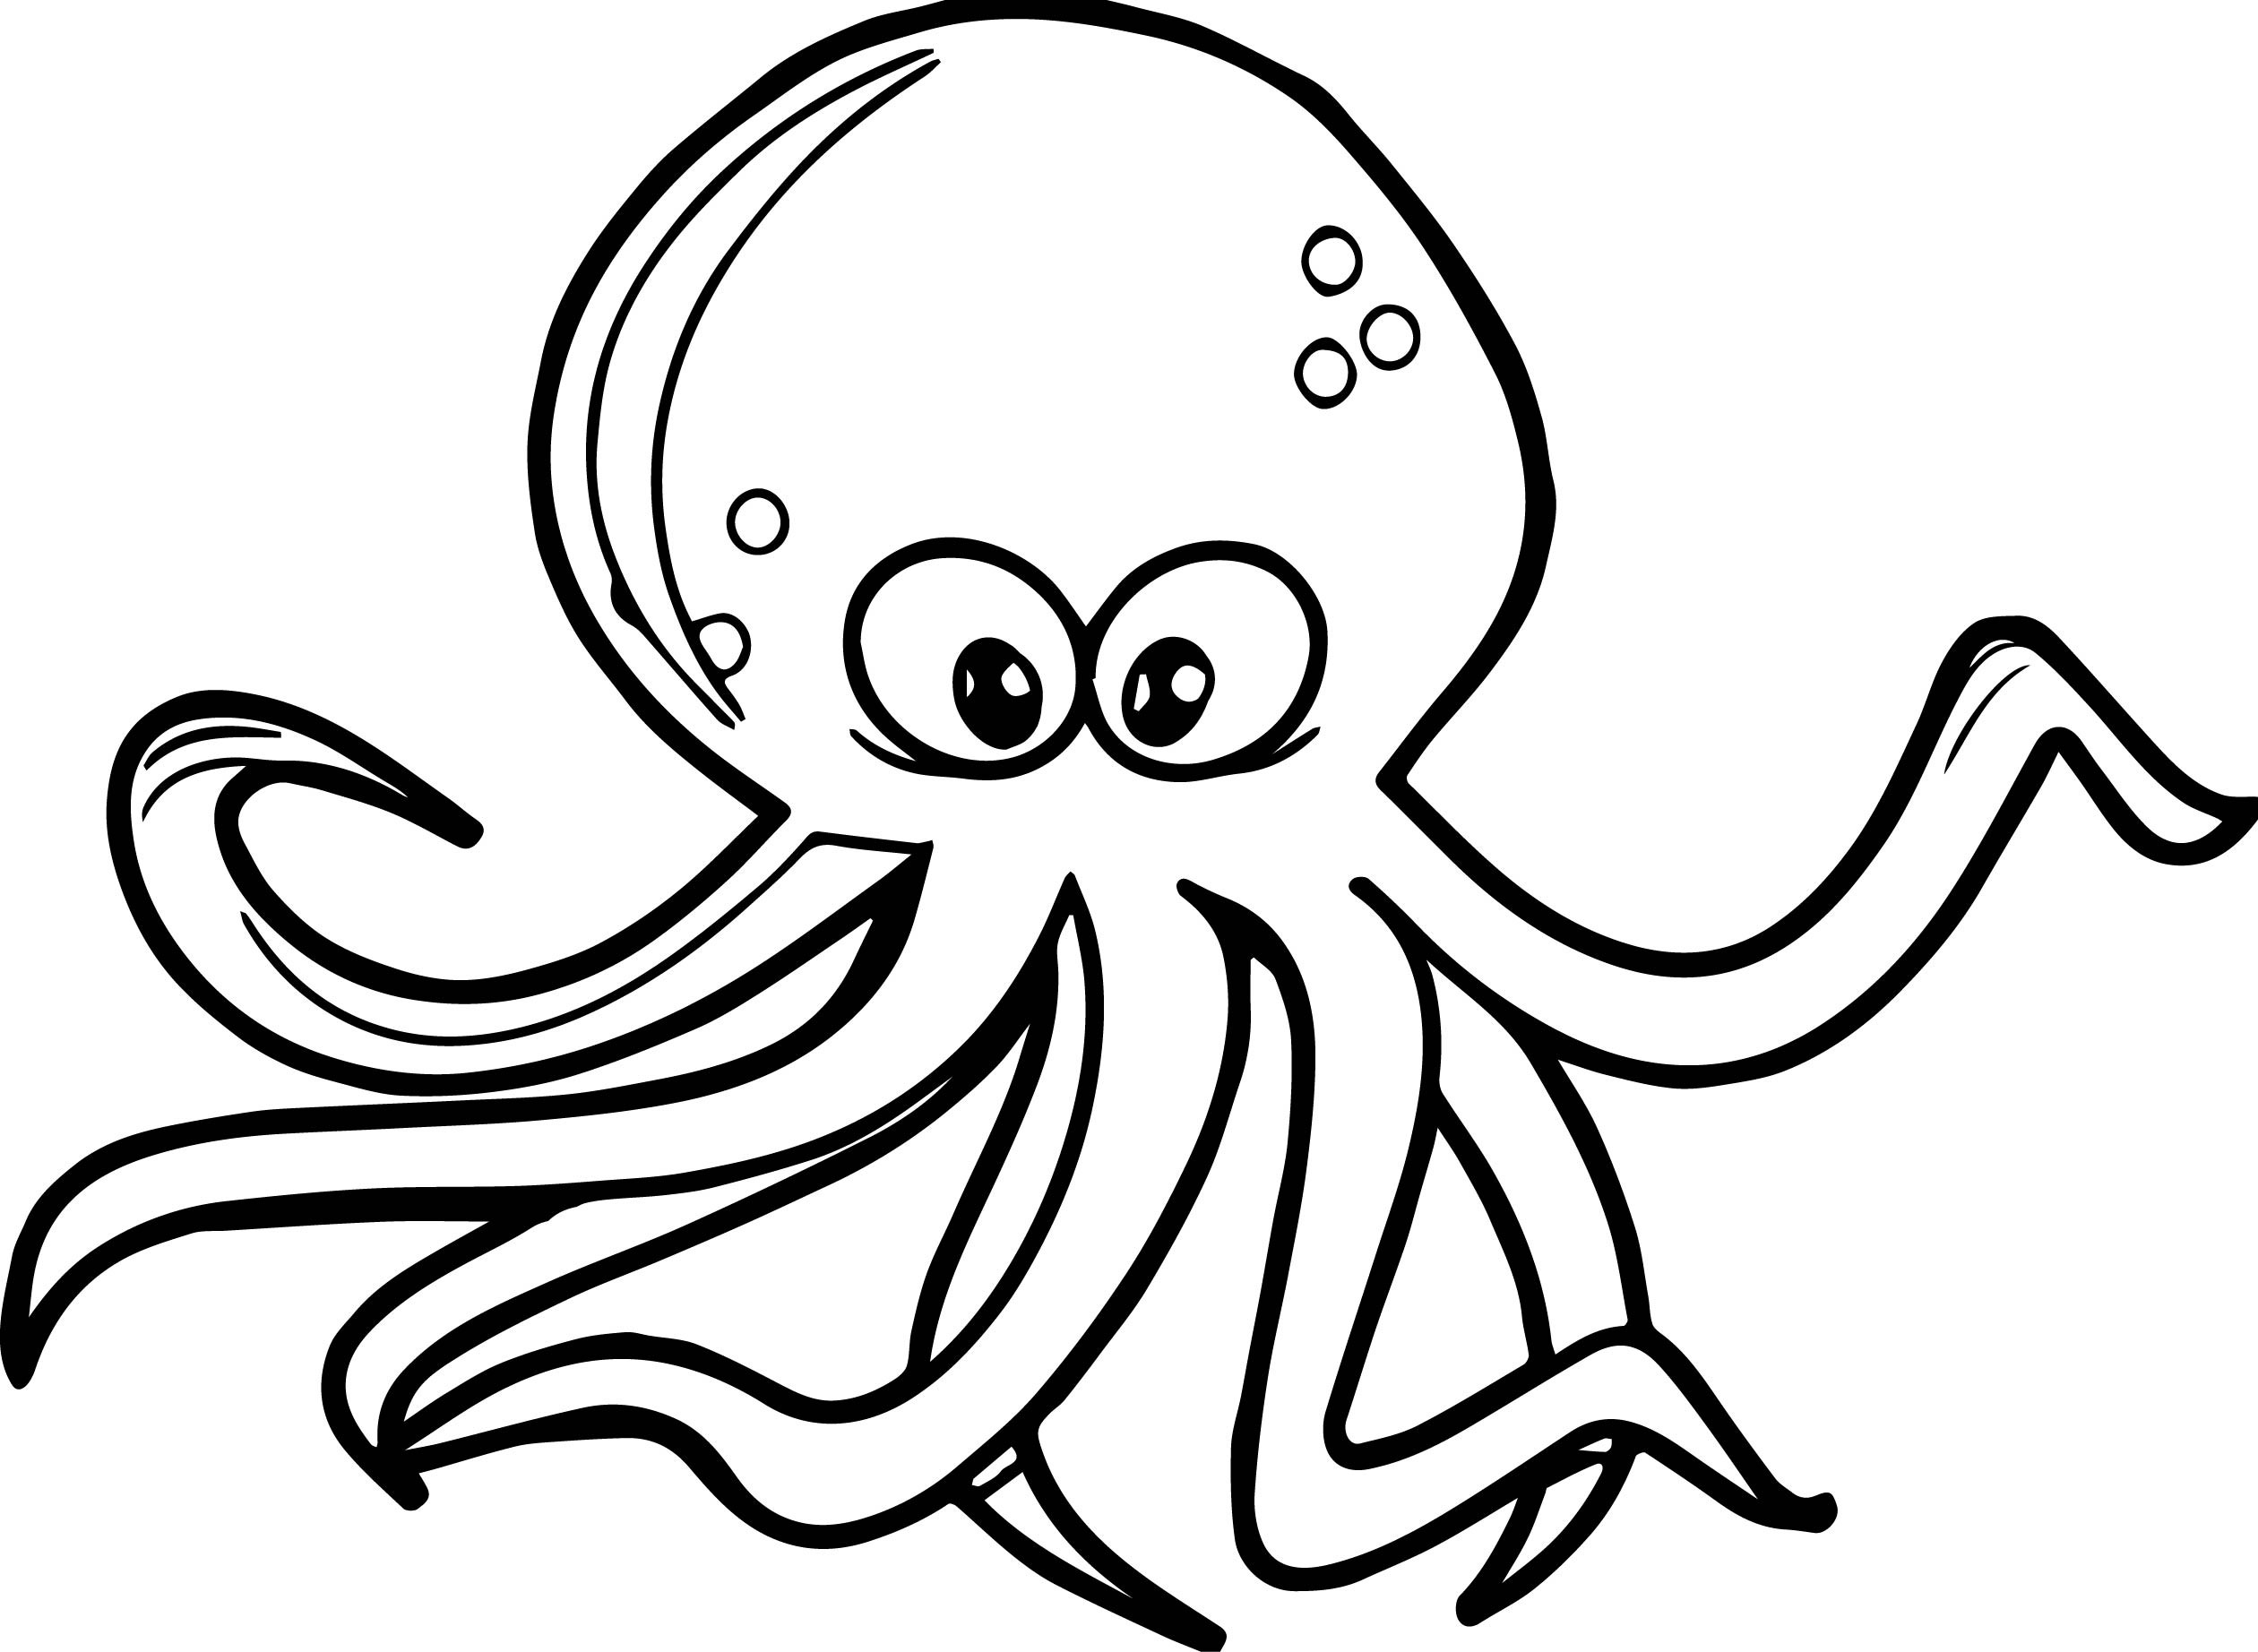 2520x1844 New Octopus Page To Color Gallery Printable Coloring Sheet Octopus